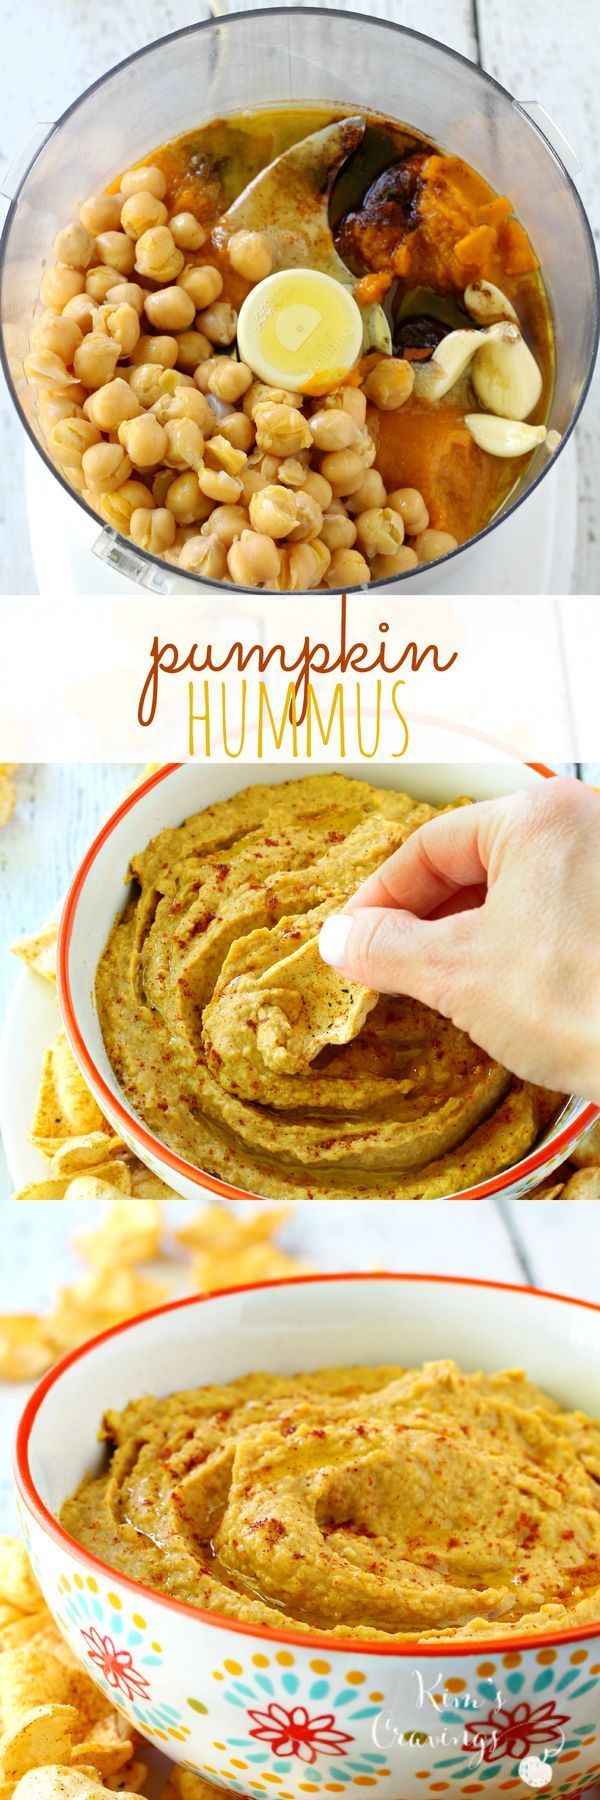 Traditional hummus gets a major kick of flavor with everyone's favorite fall fruit in this healthy pumpkin hummus. Yes, pumpkins are in the fruit family- they're actually a berry!